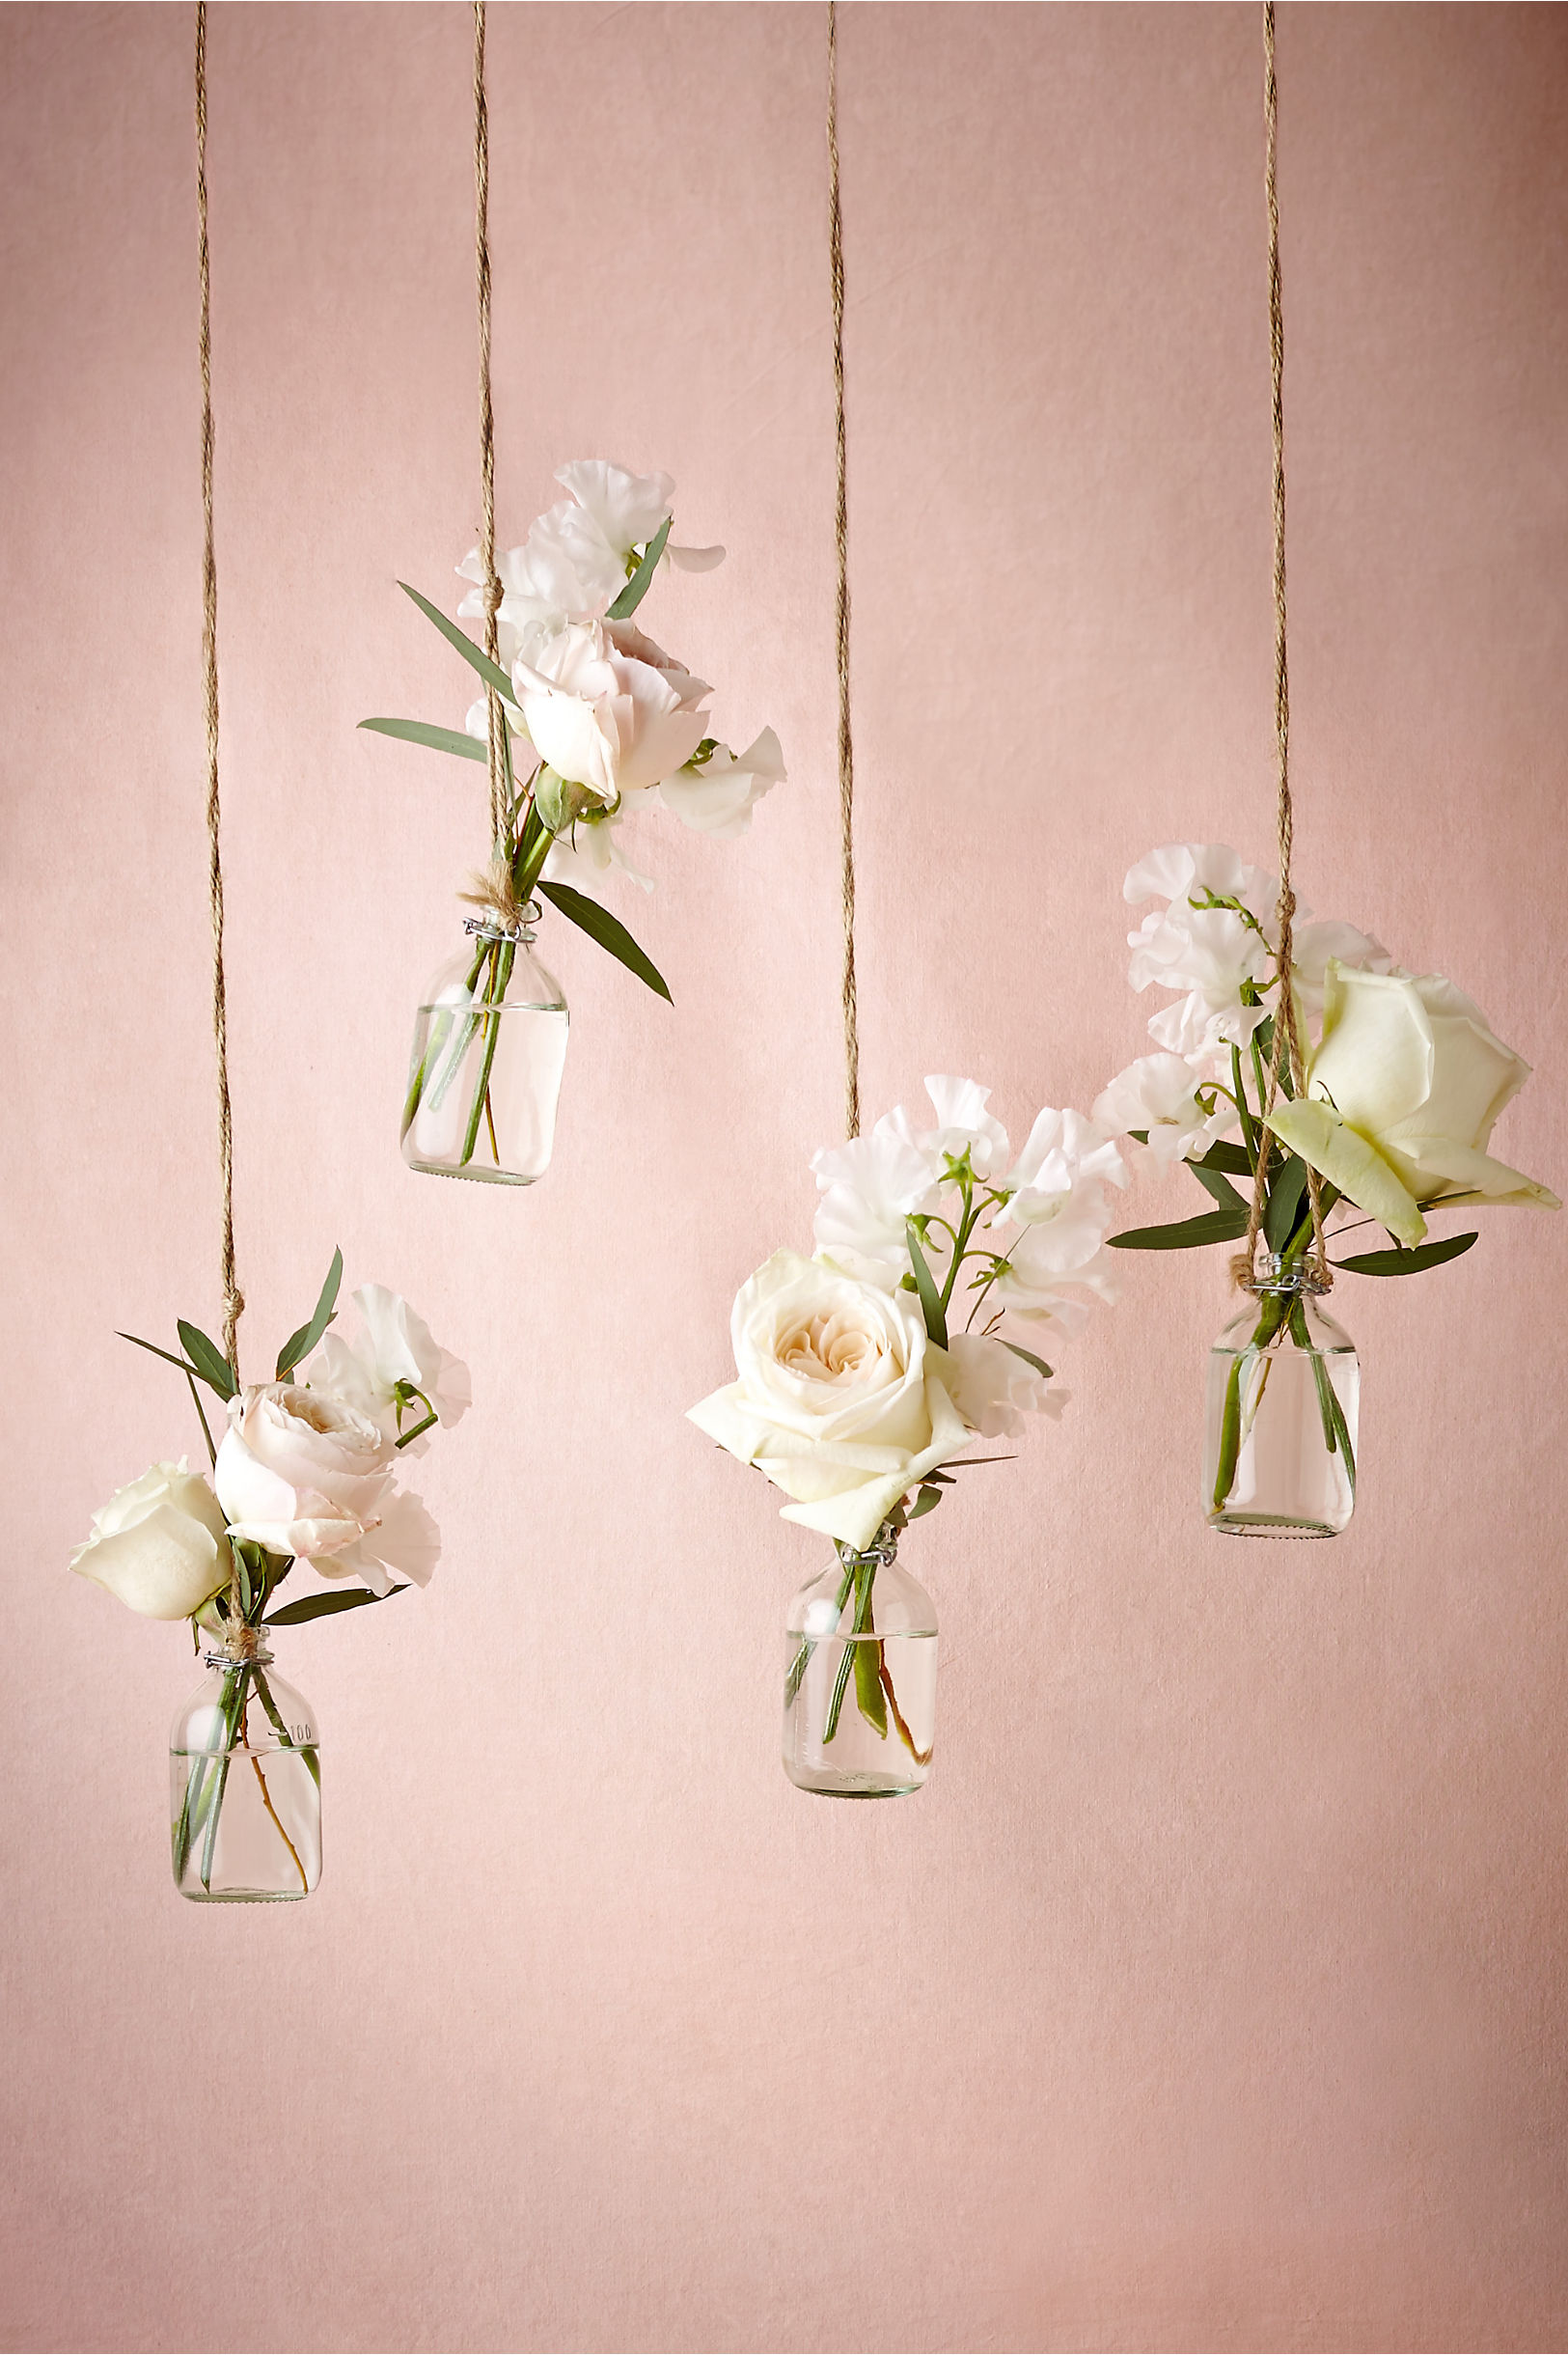 Hanging bud vases in front of a pink wall as an idea for bridal shower decorations